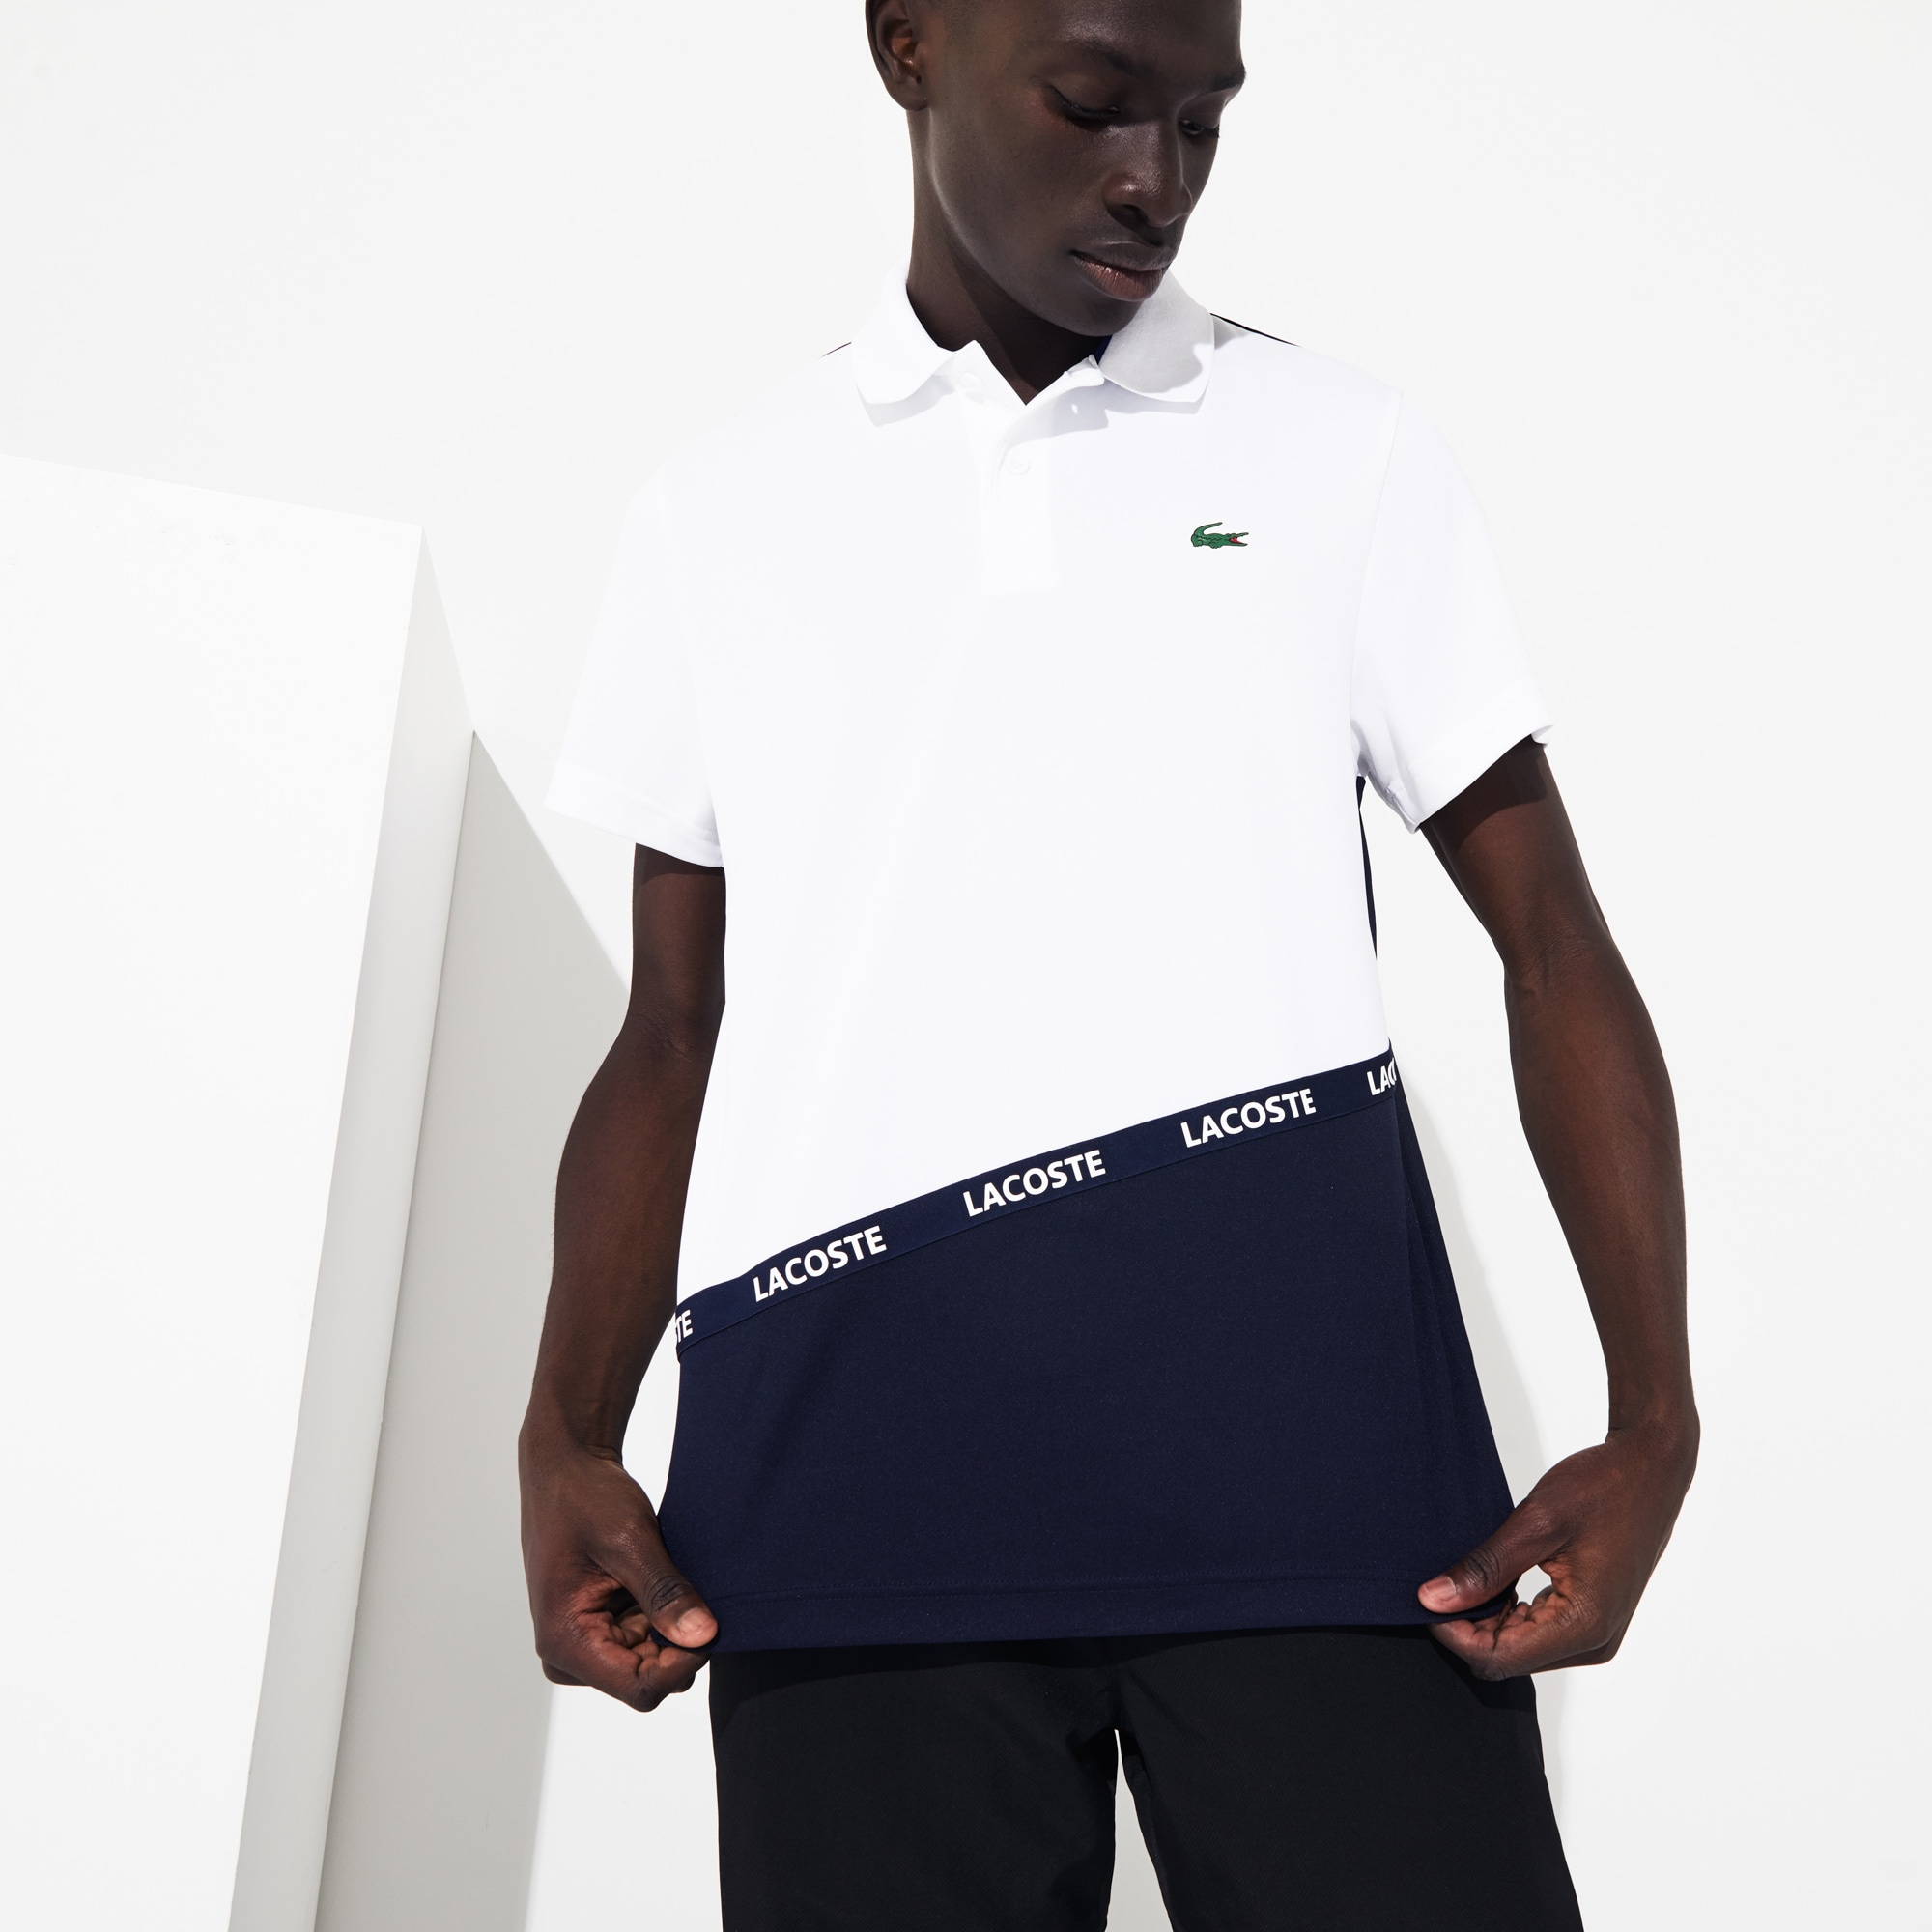 Hommepolos Longues Polo Manches Lacoste Courtes Hrtbsdxqc Et f6yb7g